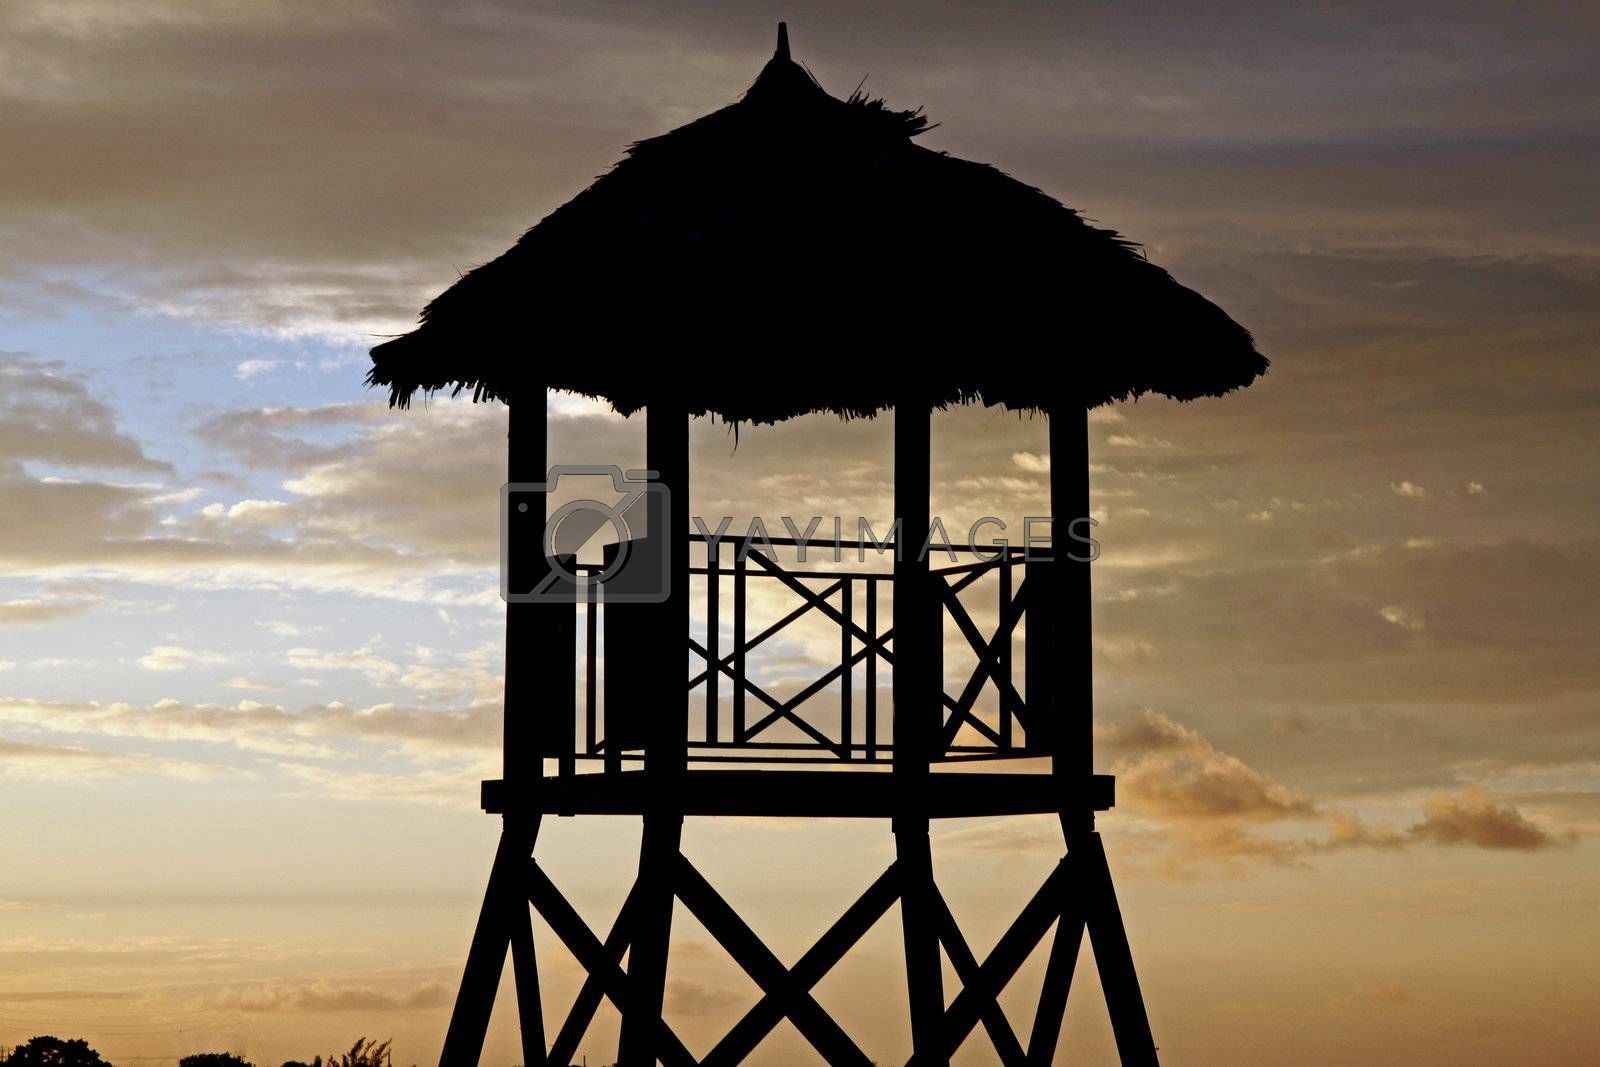 Tropical watchtower overlooking a beach silhouette at sunset